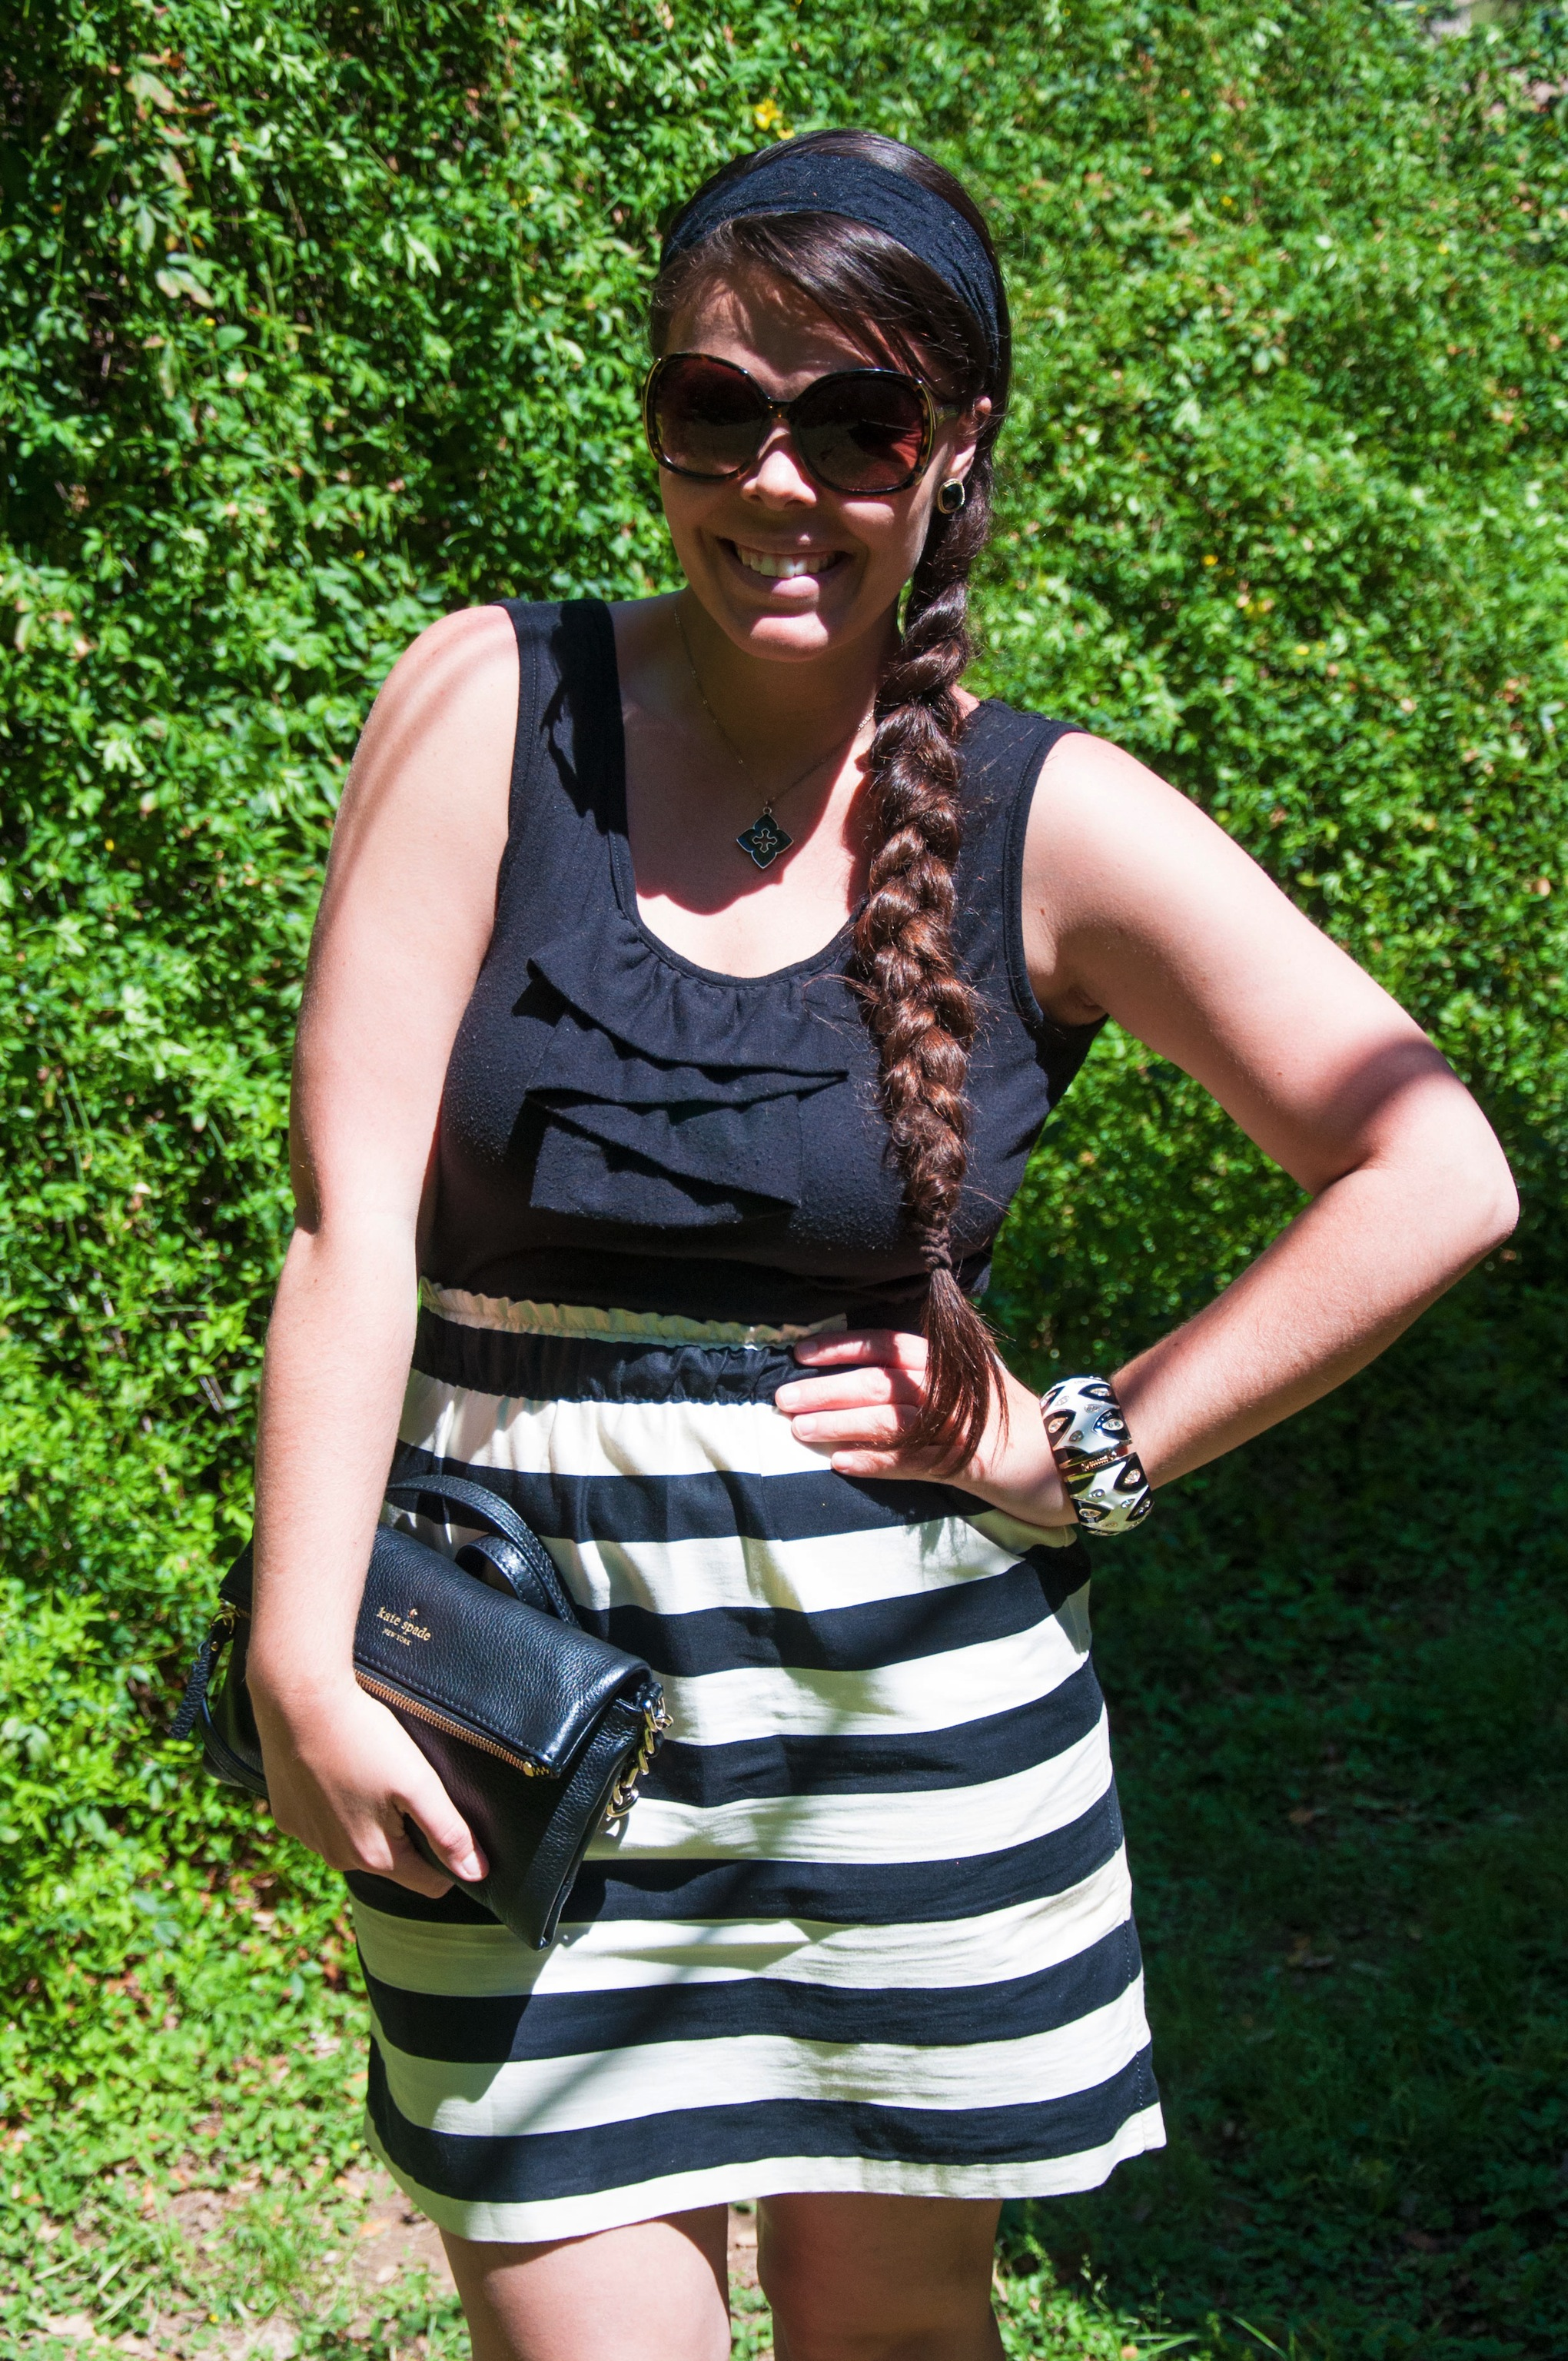 Black and white skirt with black top